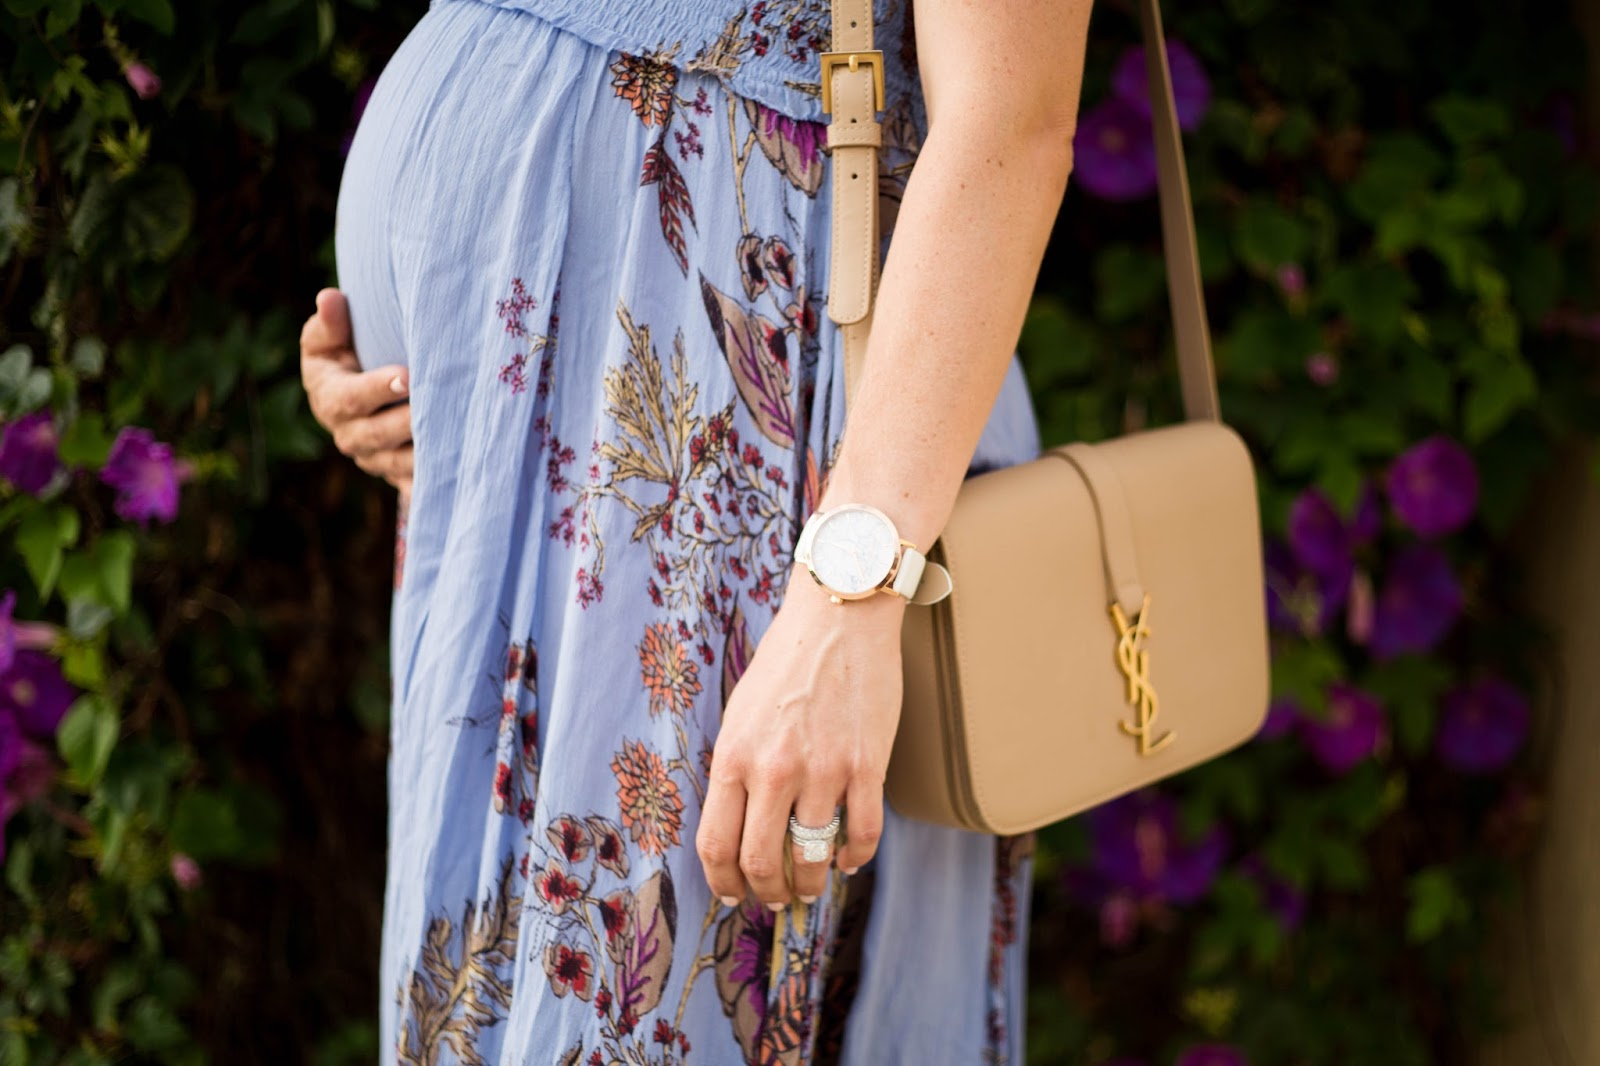 bump and designer bag